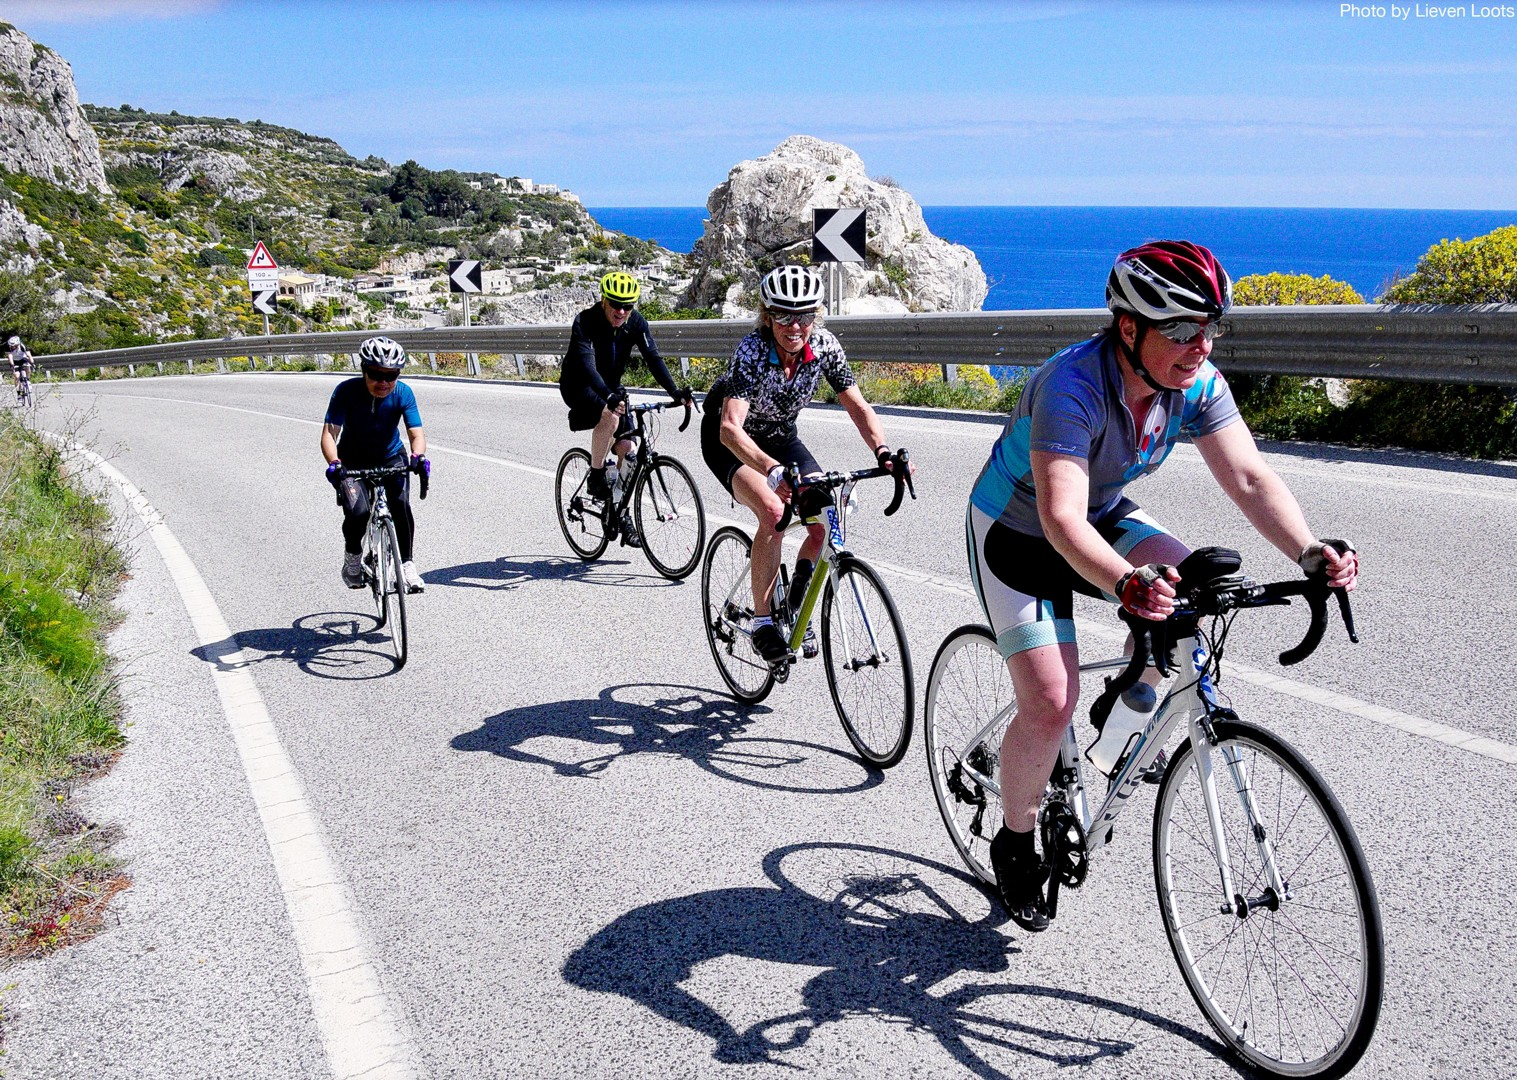 group-cycling-holiday-puglia-italy.jpg - Italy - Puglia - The Heel of Italy - Guided Road Cycling Holiday - Italia Road Cycling